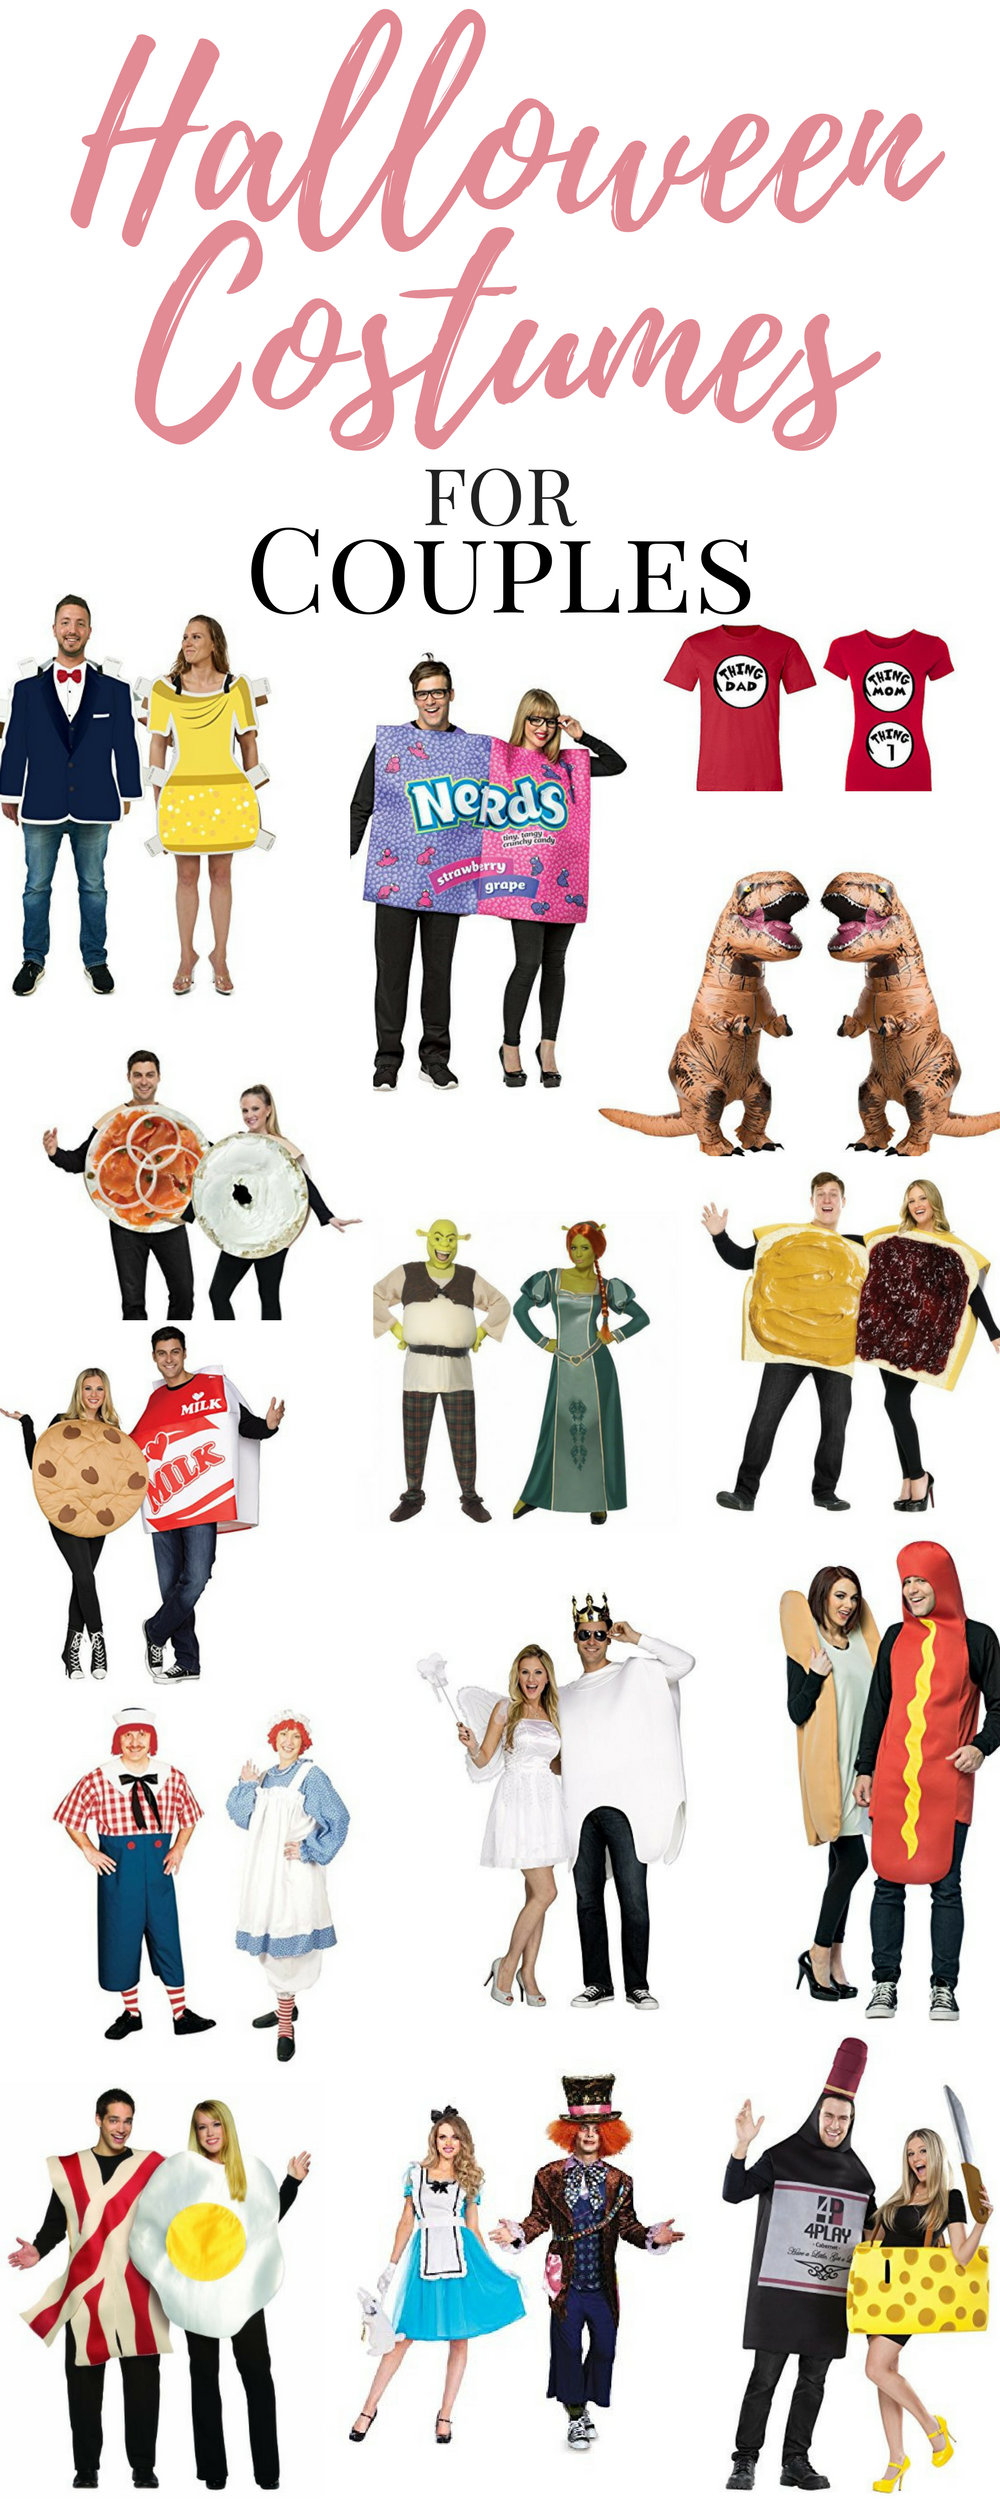 Looking for some of the Best Halloween Costumes for Couples?  Unique, fun, couples costumes are all the rage, here are some great Halloween Costume Ideas for your next Halloween Party!